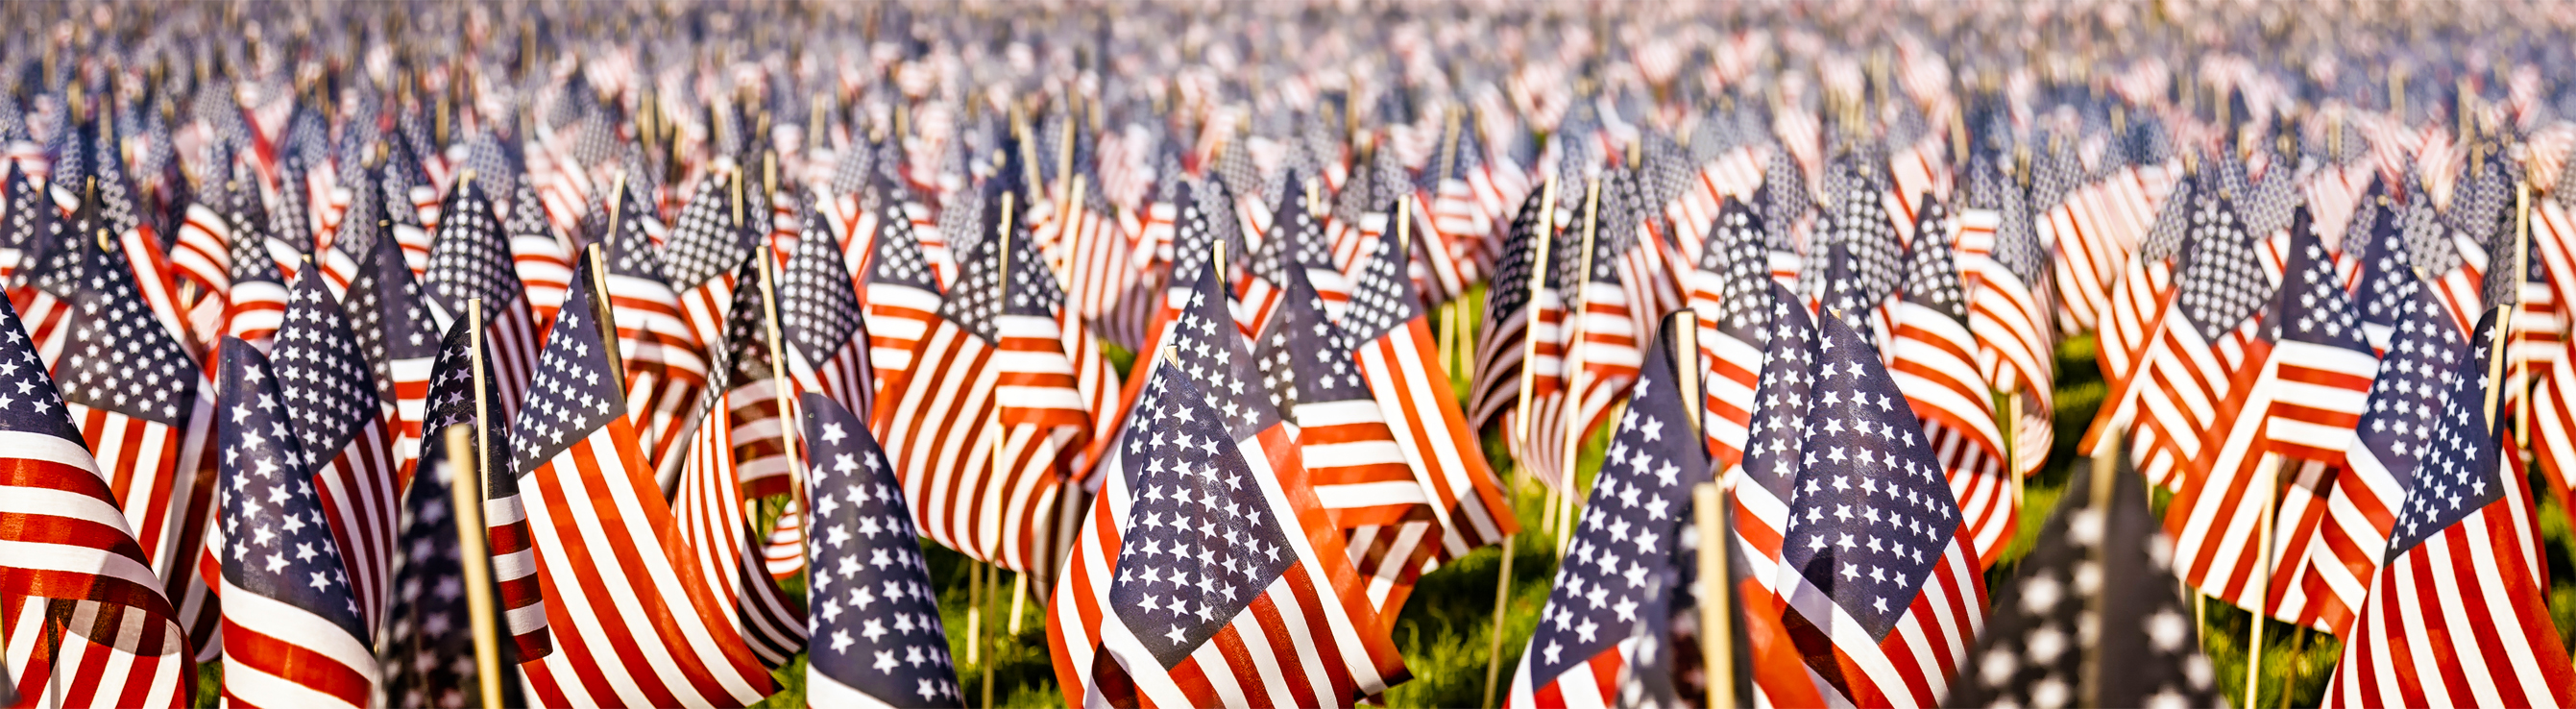 memorial-day-background-1